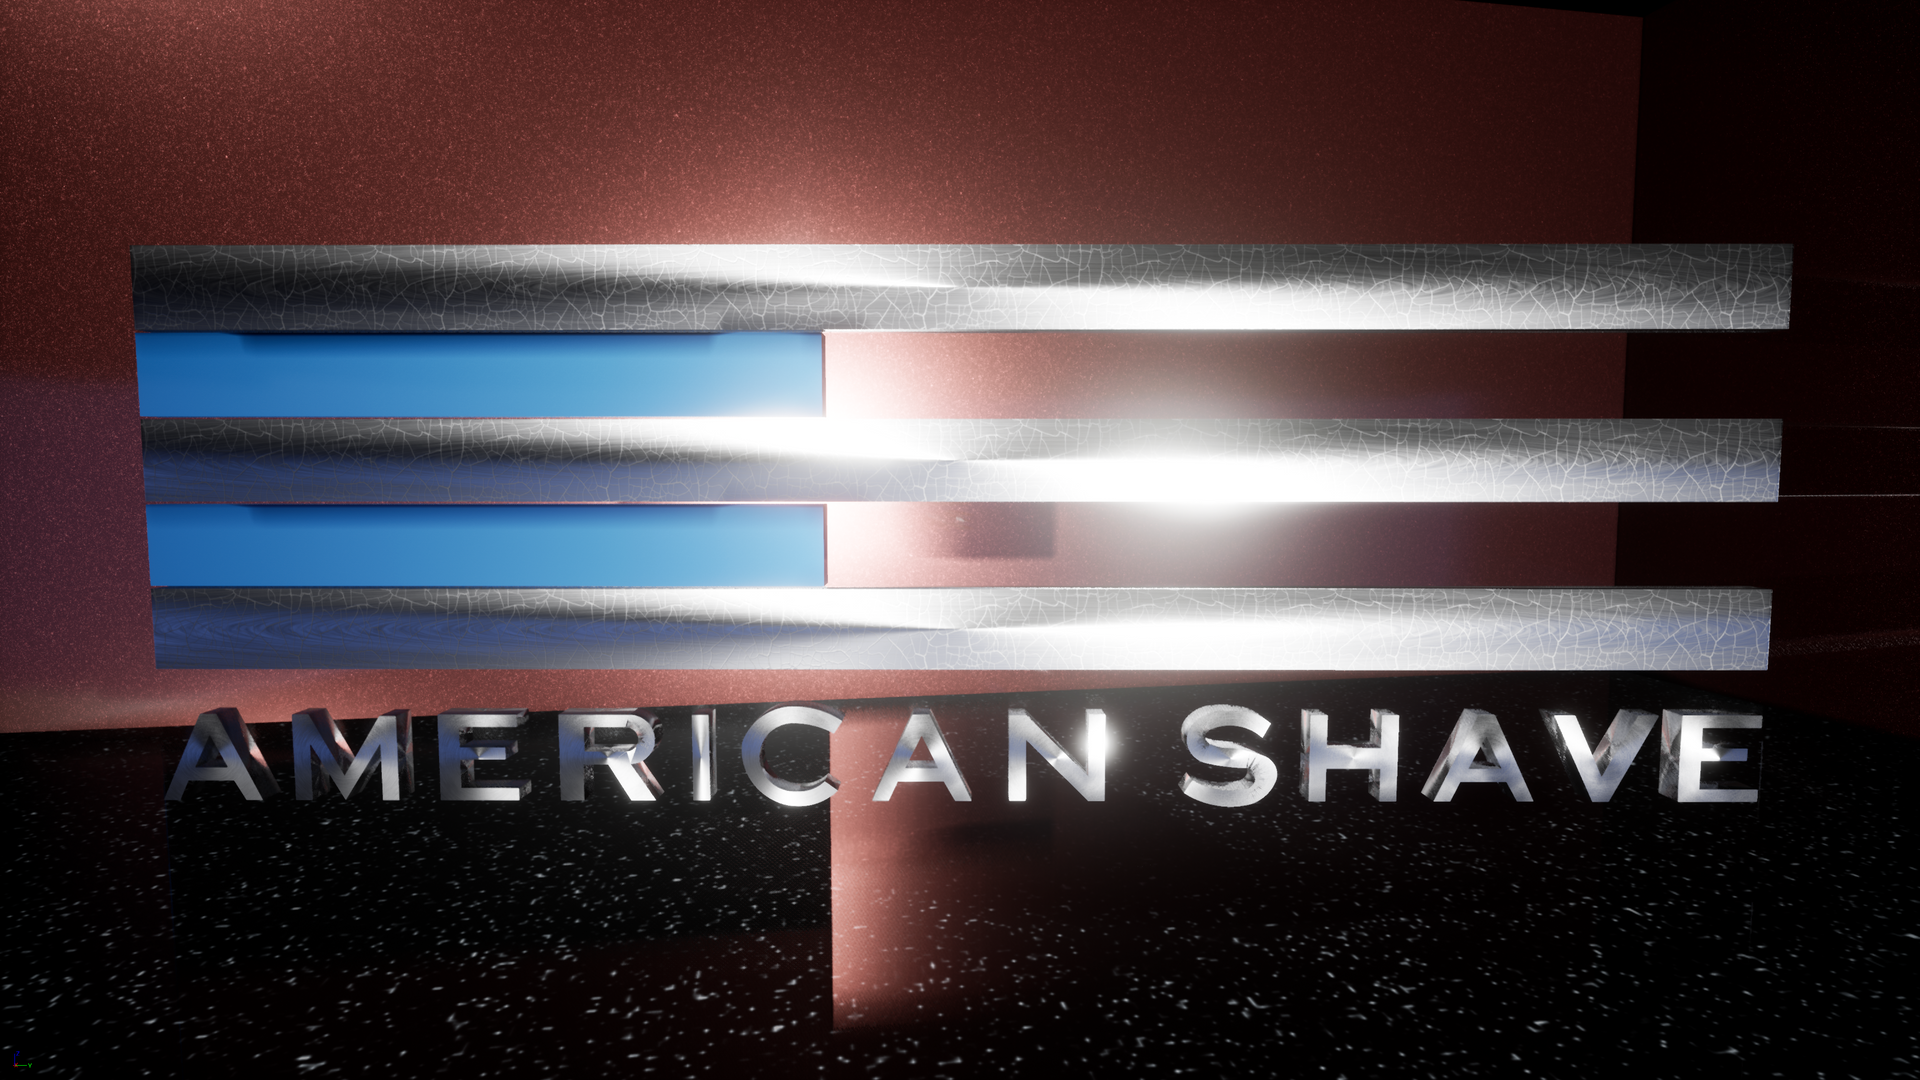 American Shave 3d logo